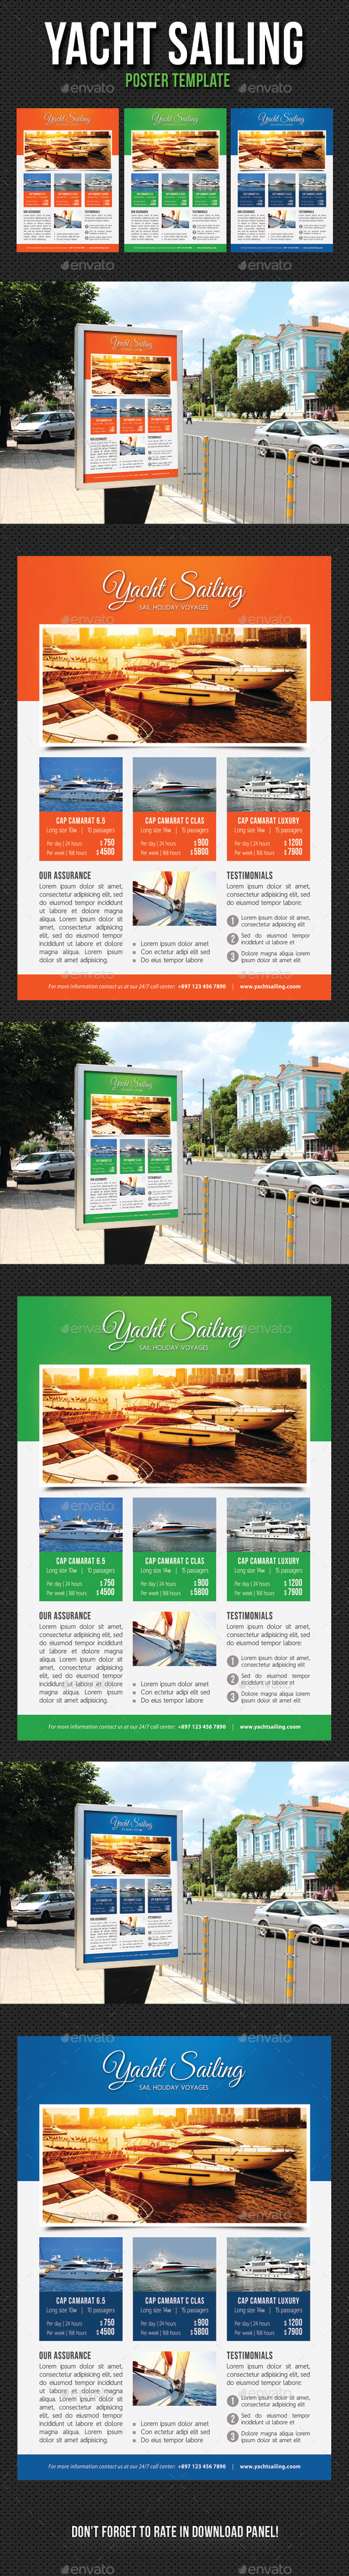 Yacht Sailing Poster Template V08 - Signage Print Templates